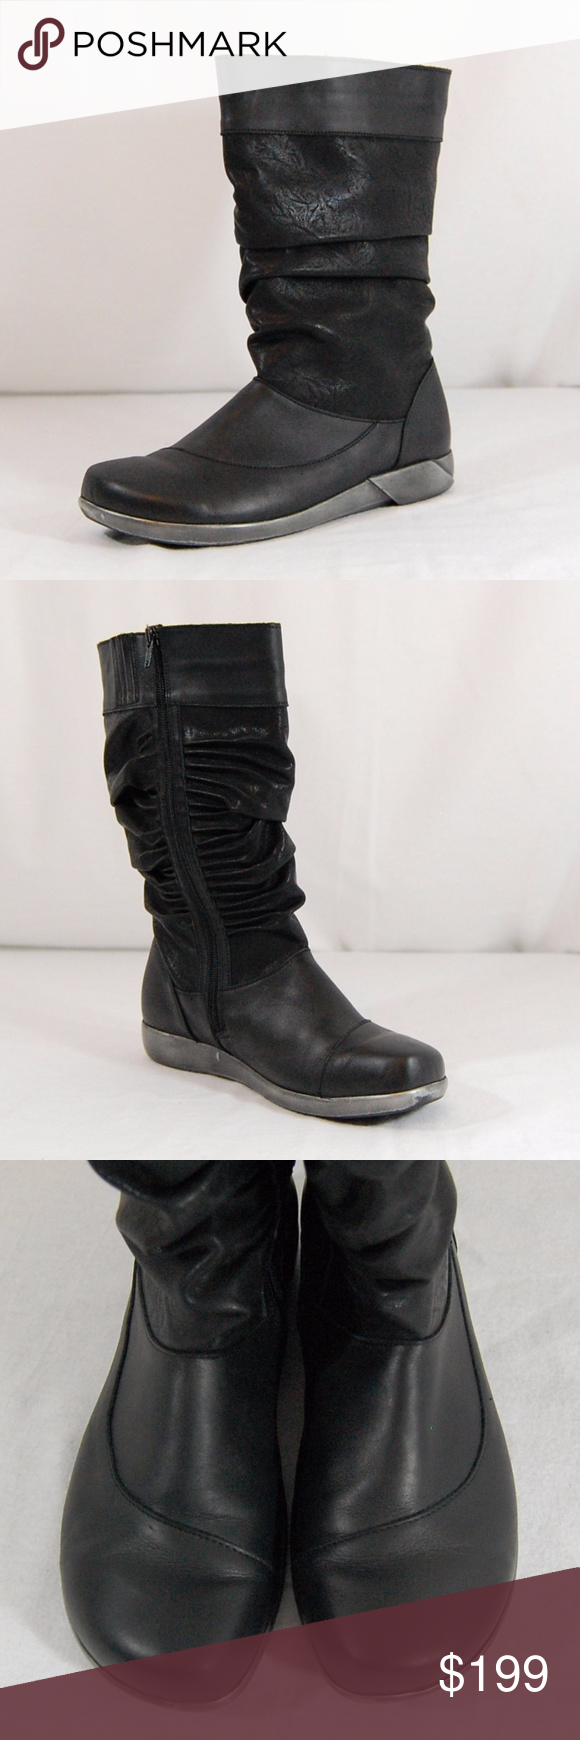 cold comforter of tall lumi photo propet s walking boots most comfortable weather for lace x women